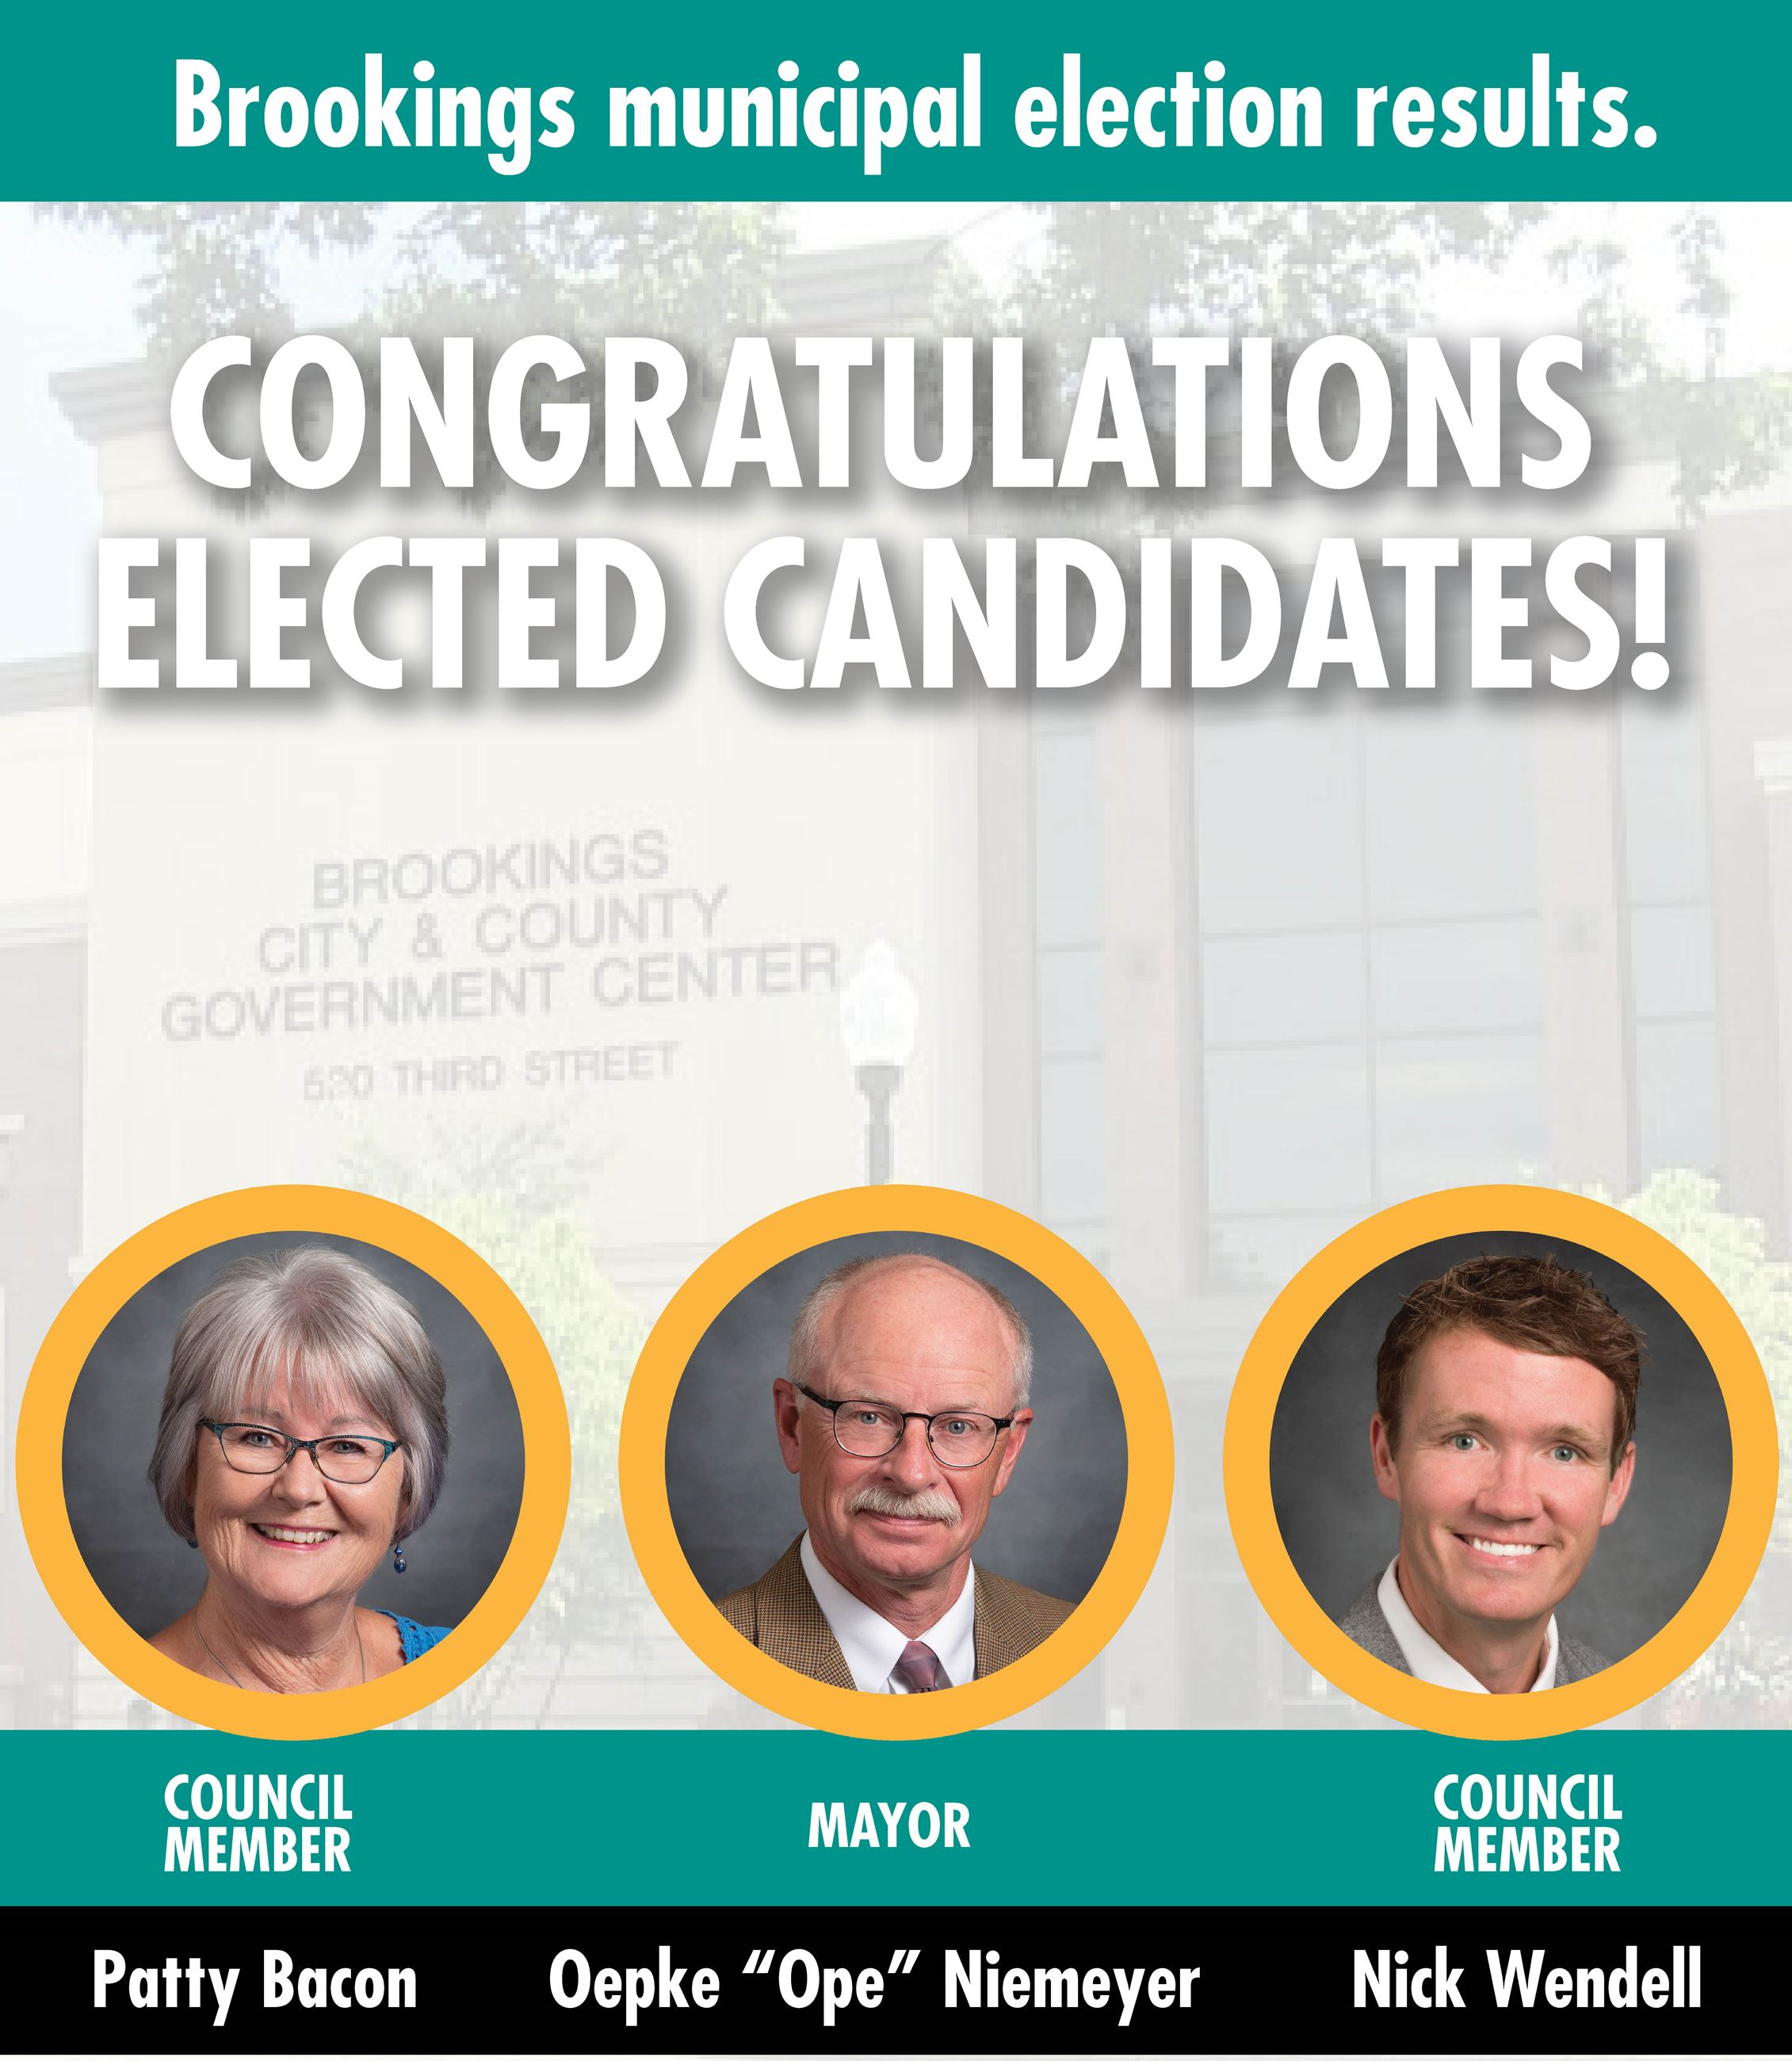 Congratulations Elected Candidates Photo of Oepke Ope Niemeyer Patty Bacon and Nick Wendell